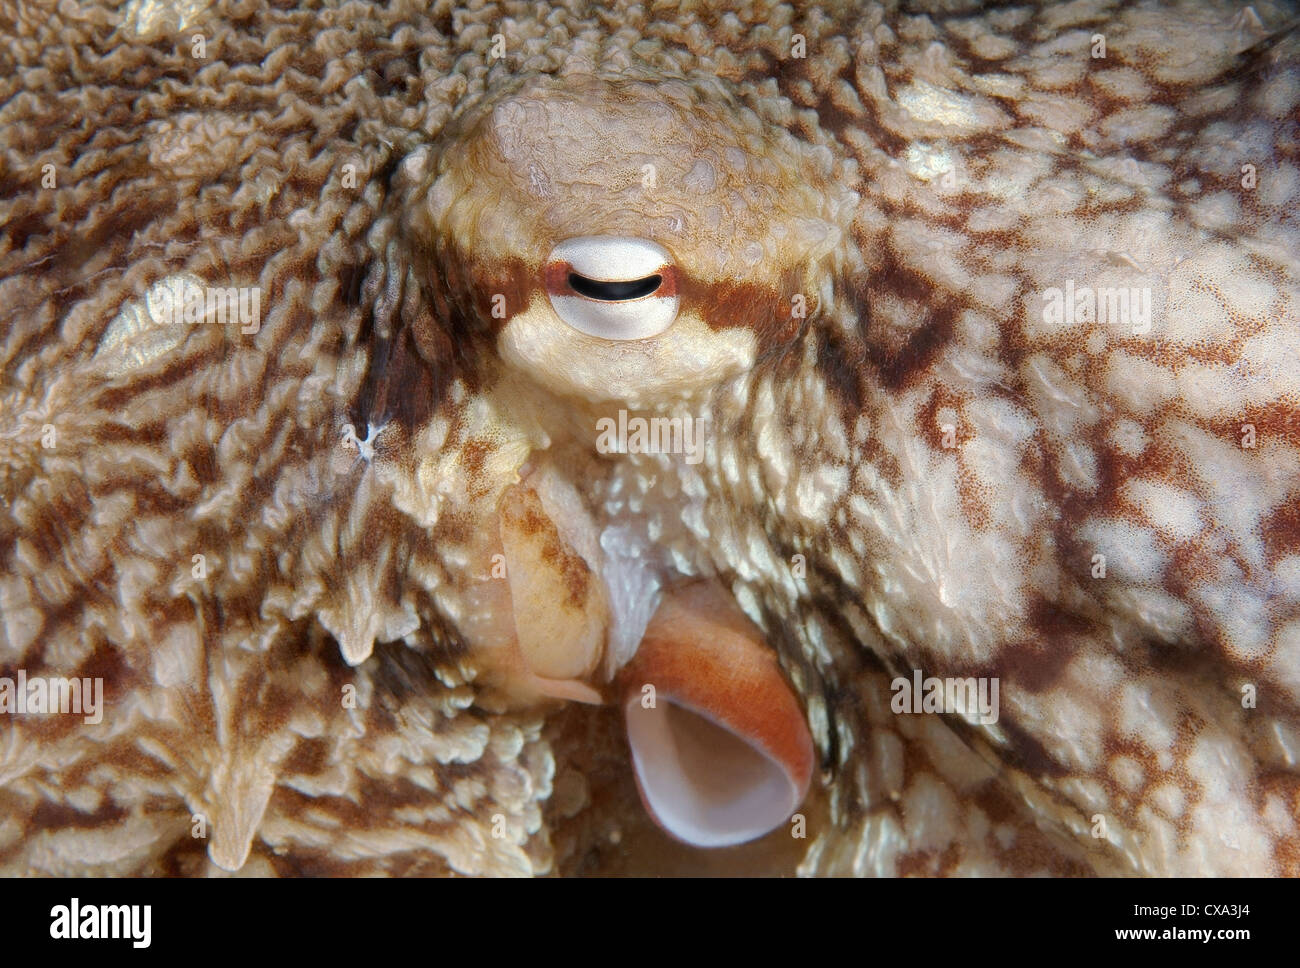 giant Pacific octopus or North Pacific giant octopus, (Enteroctopus dofleini) Japan sea, Far East, Primorsky Krai, - Stock Image